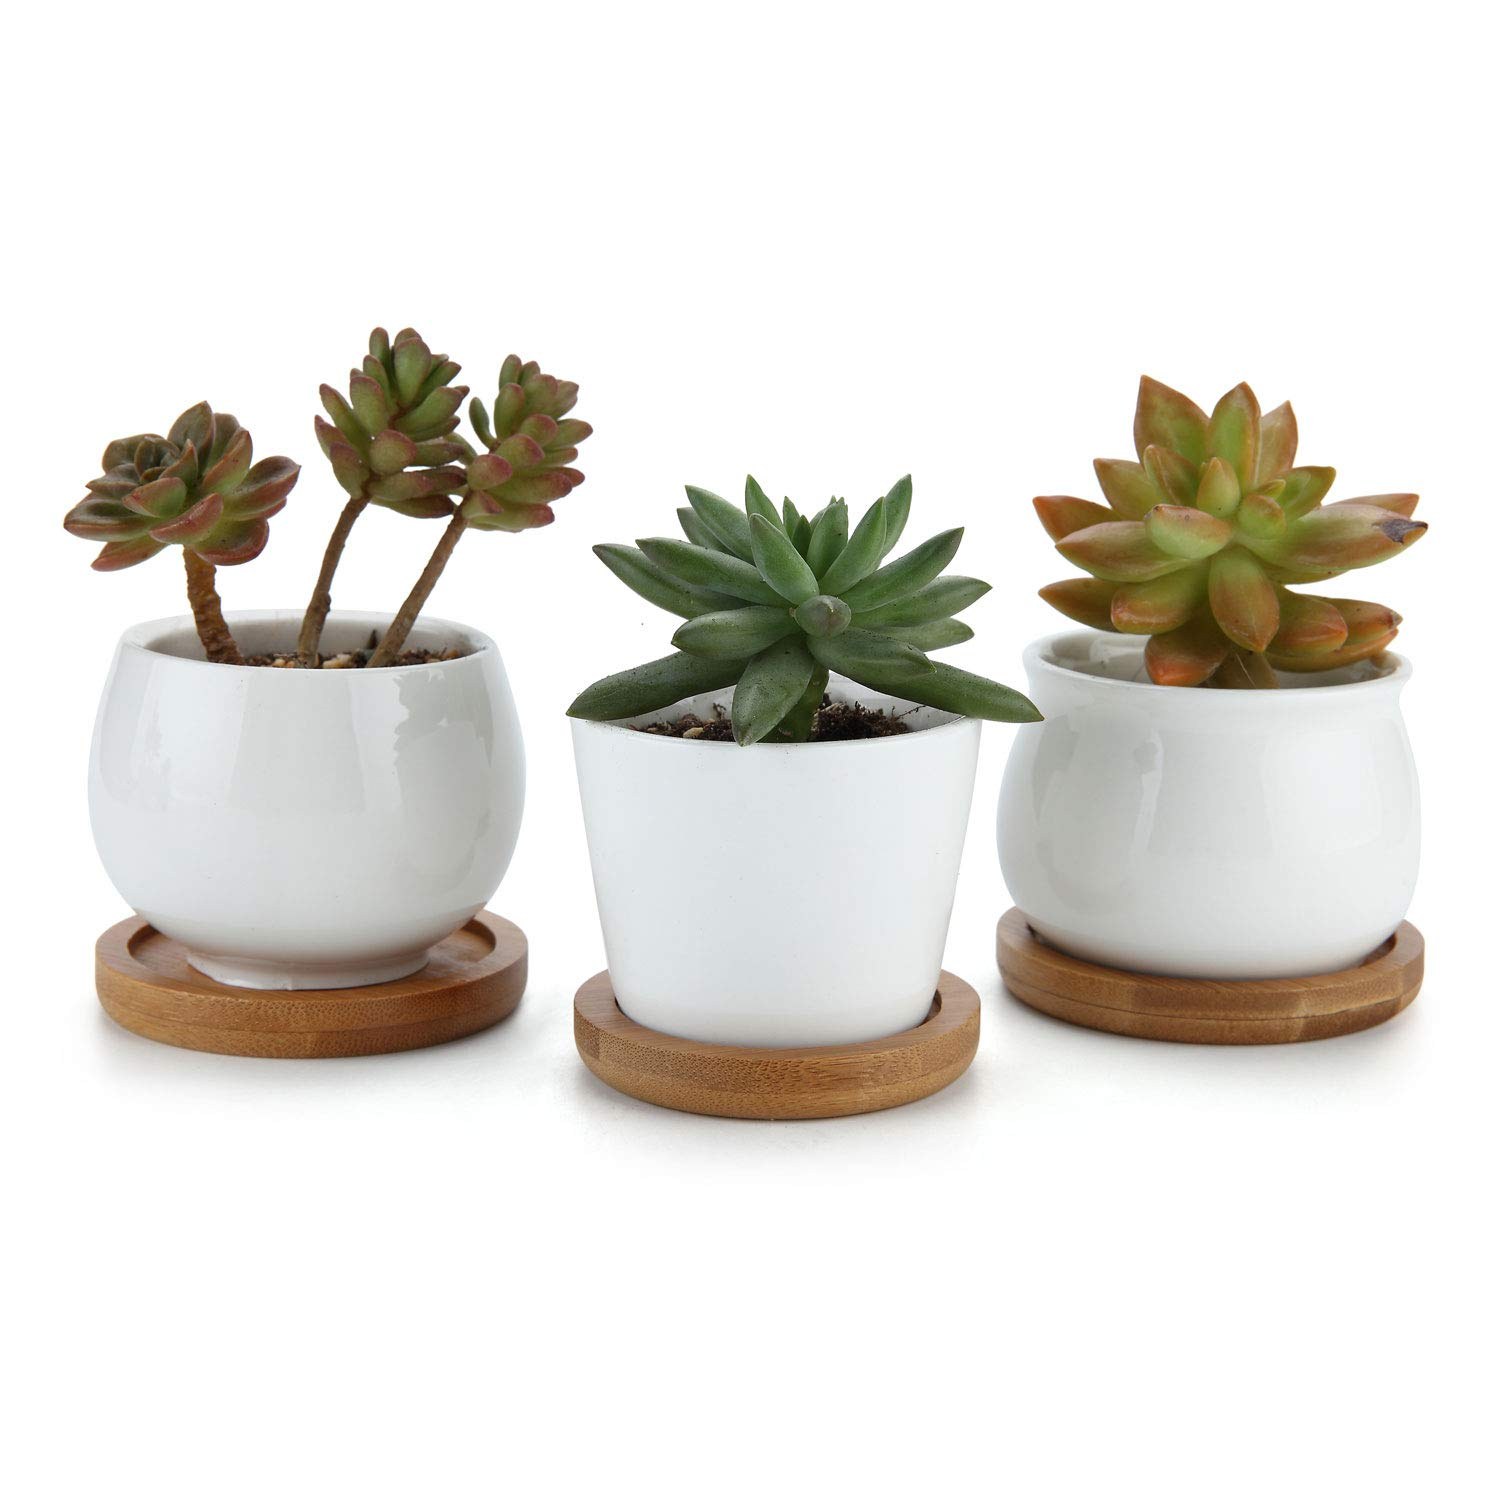 T4U 2.5 Inch Ceramic Pot White Set of 3, Succulent Plant Planter Cactus Plant Pot Flower Container Holder with Bamboo Trays Home Office Decoration